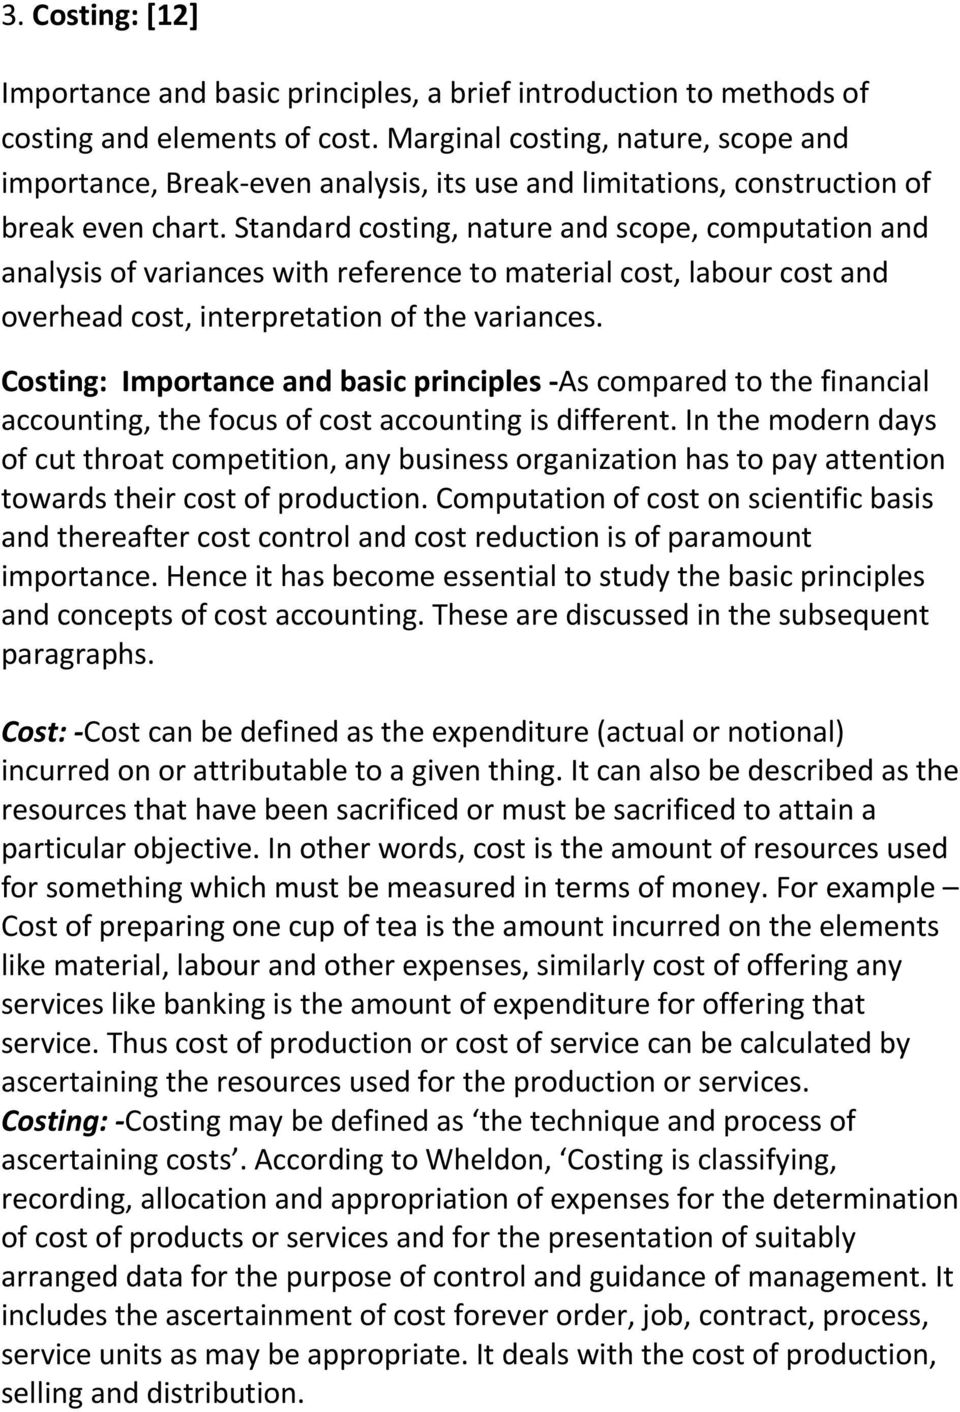 Standard costing, nature and scope, computation and analysis of variances with reference to material cost, labour cost and overhead cost, interpretation of the variances.